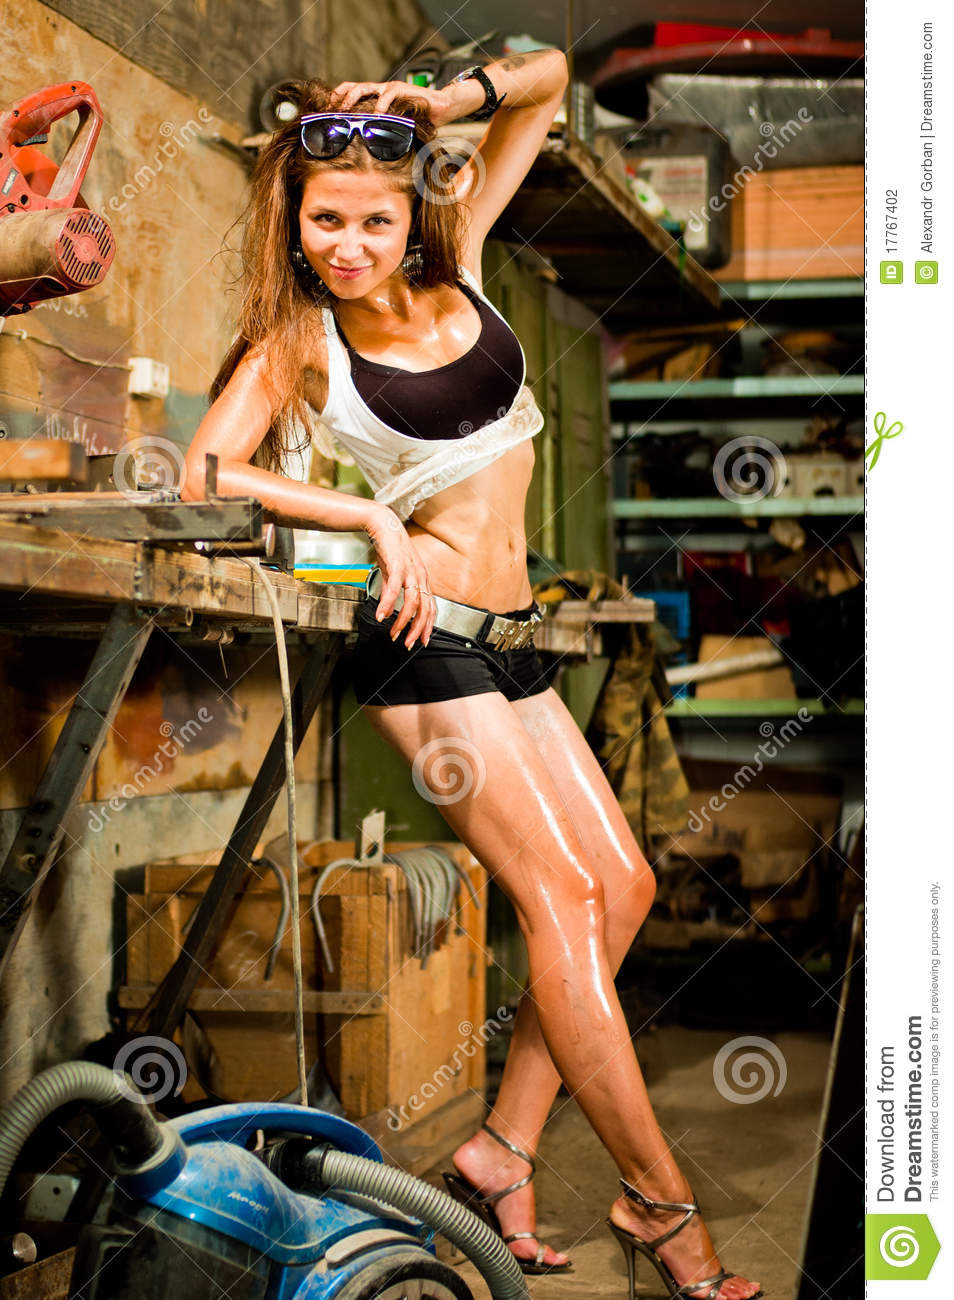 Woman working with tools